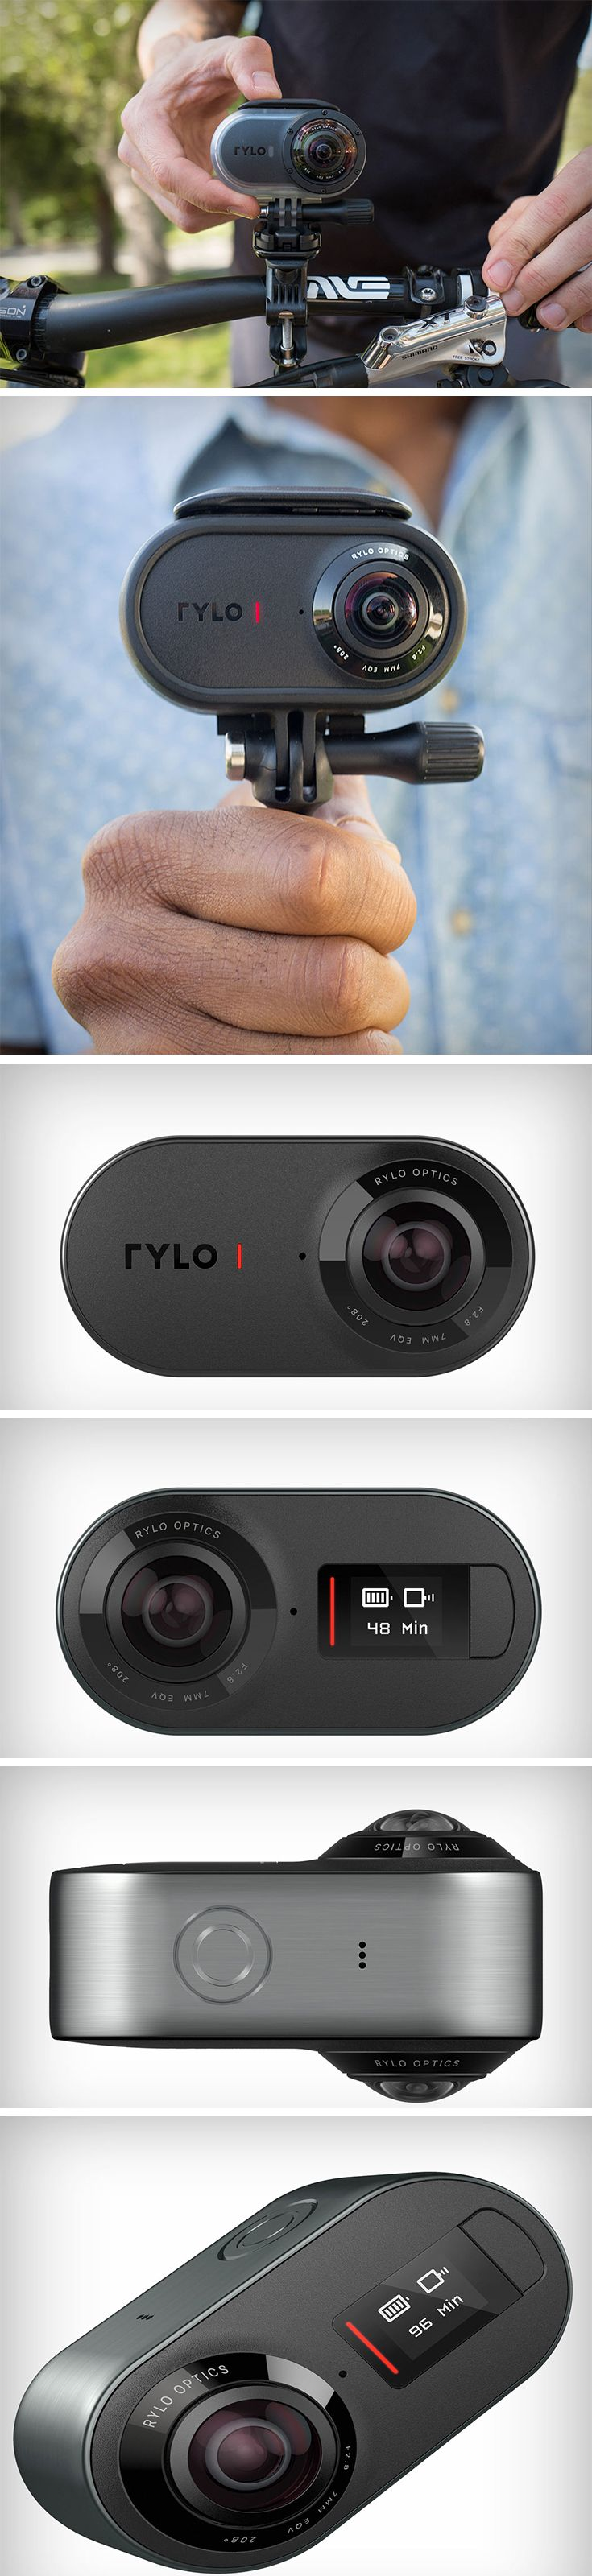 Rylo is a groundbreaking camera designed with powerful software that makes it easy for anyone to shoot, edit, and share incredibly smooth, cinematic video. To make sure you don't miss a moment of adventure, this little guy has up to 60 minutes of continuous recording time and has a removable microSD to capture every move you make. BUY NOW!